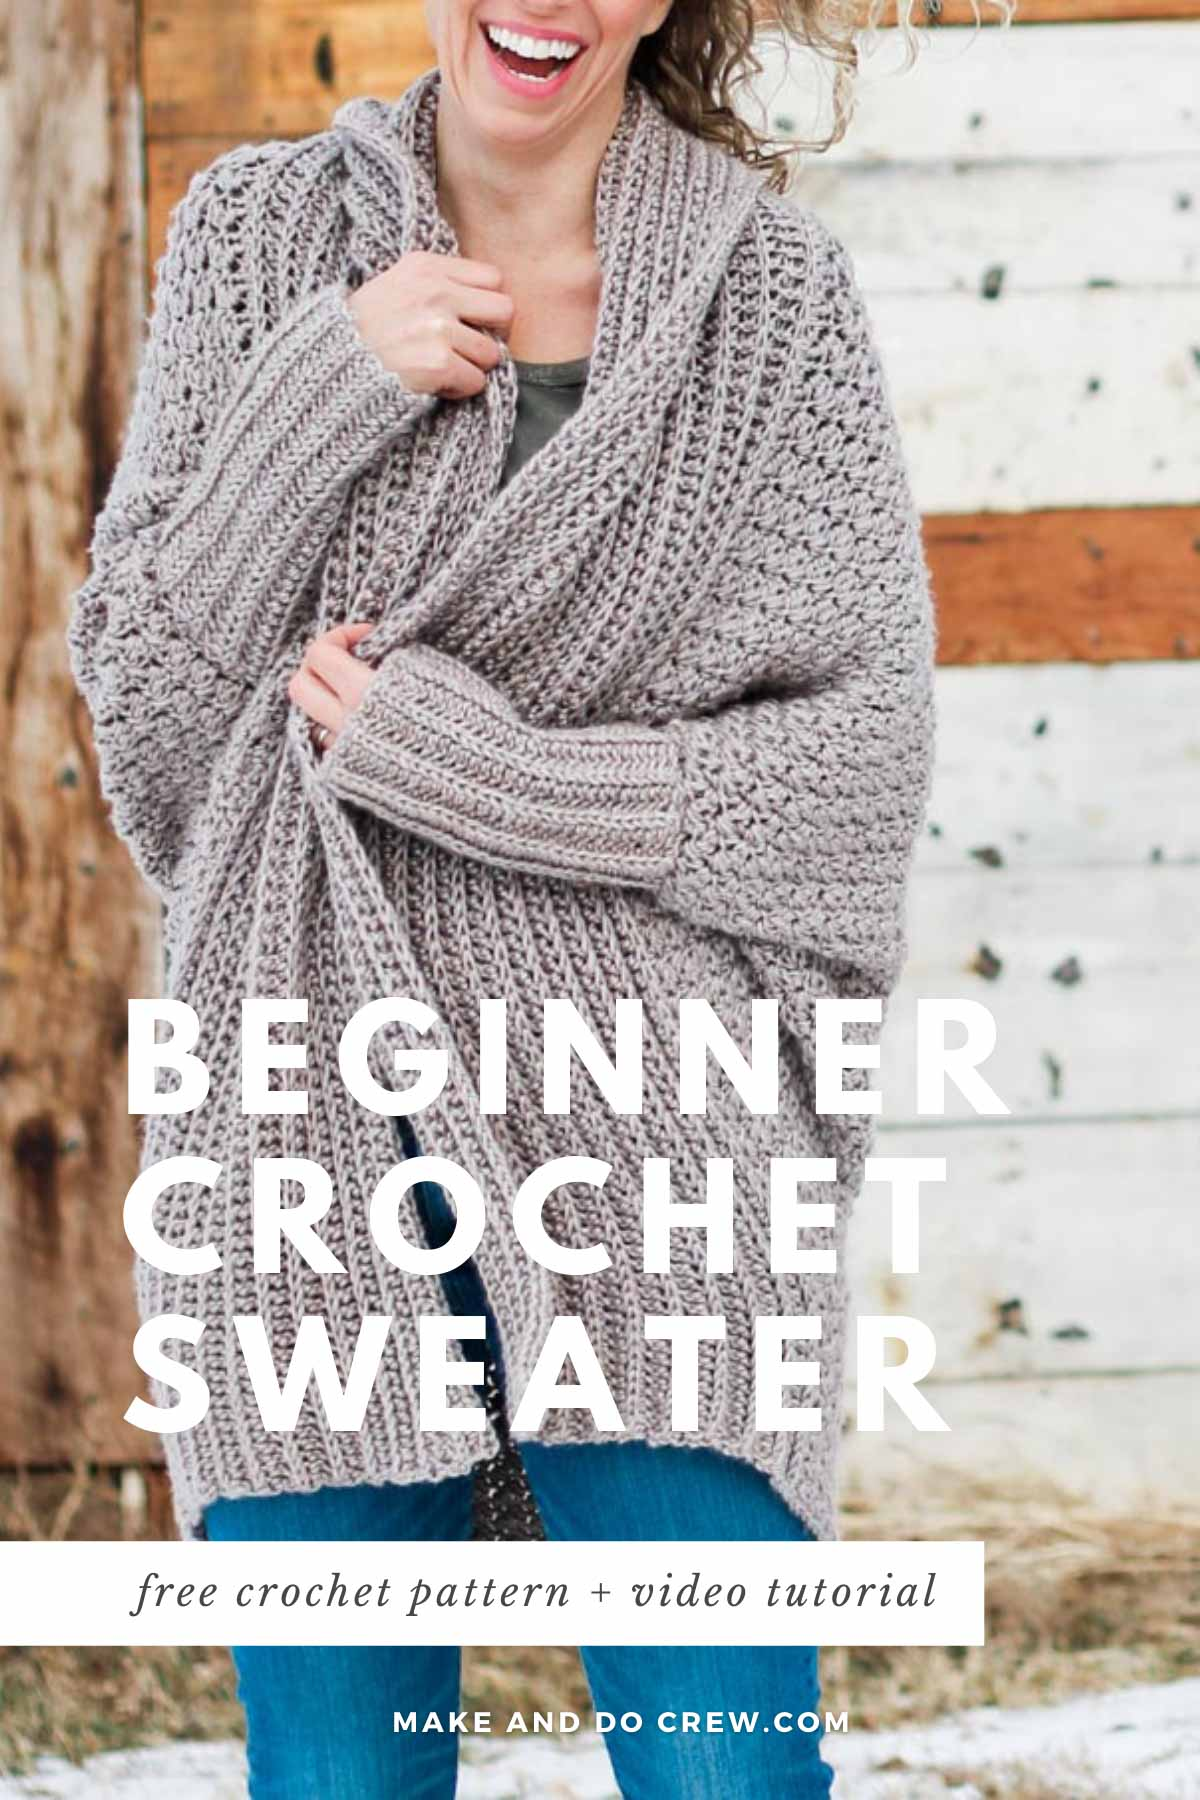 A woman snuggled into a crochet sweater made with the suzette stitch. Free pattern + video tutorial.